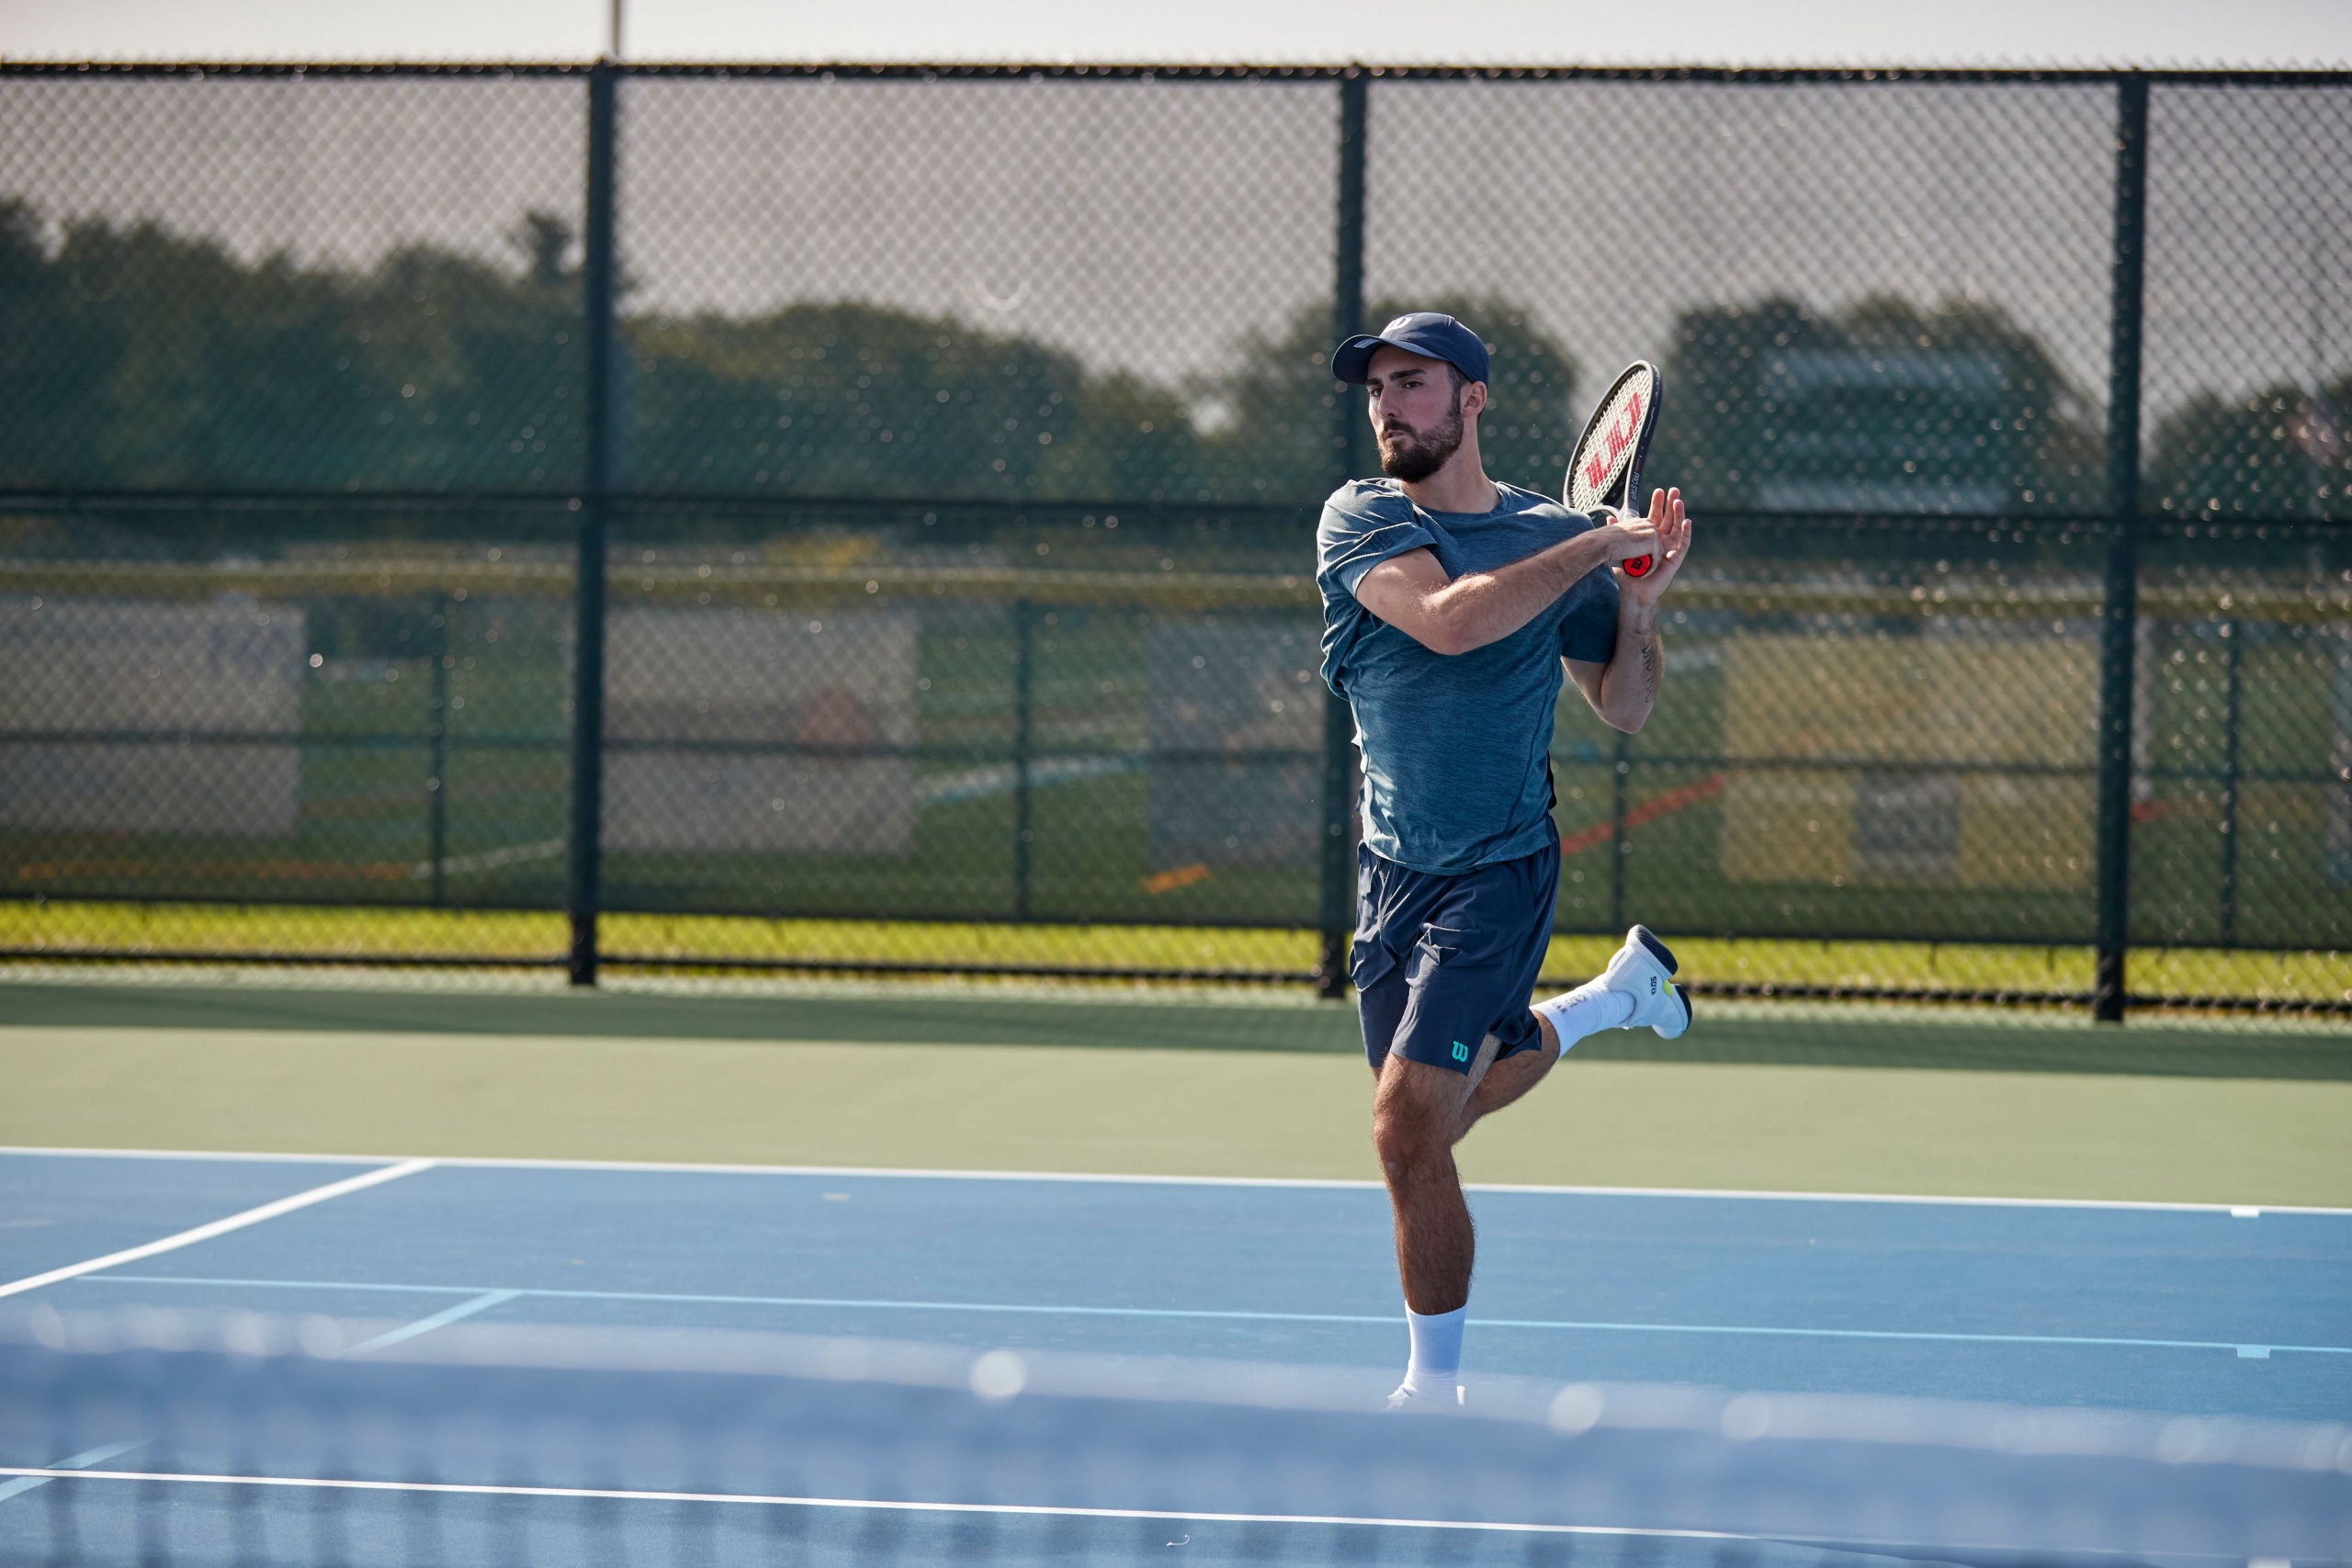 Young Canadians at National Bank Open